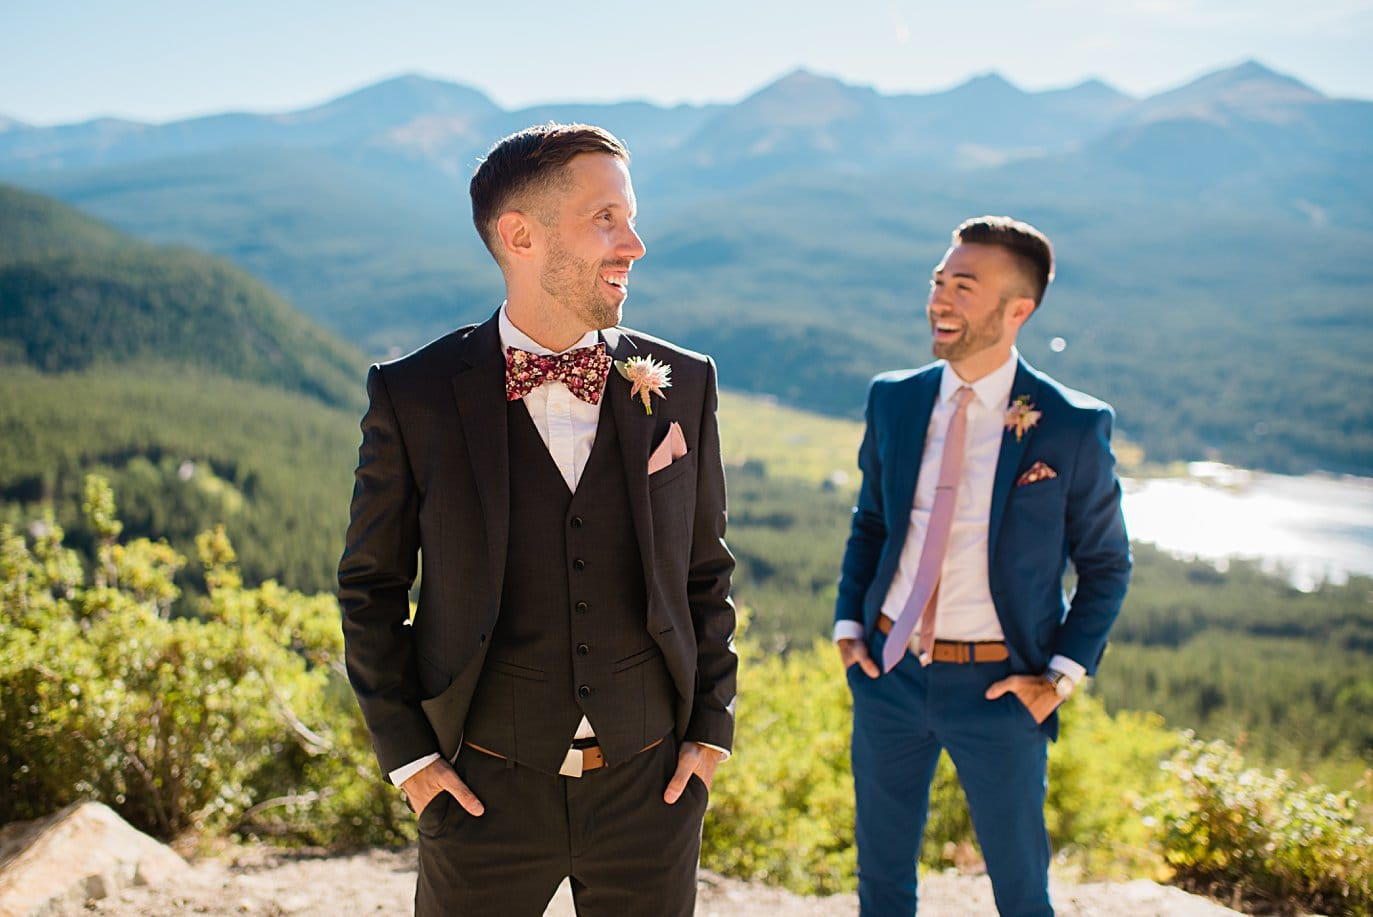 two grooms at overlook on Boreas Pass road at Boras Pass elopement by Breckenridge elopement photographer Jennie Crate